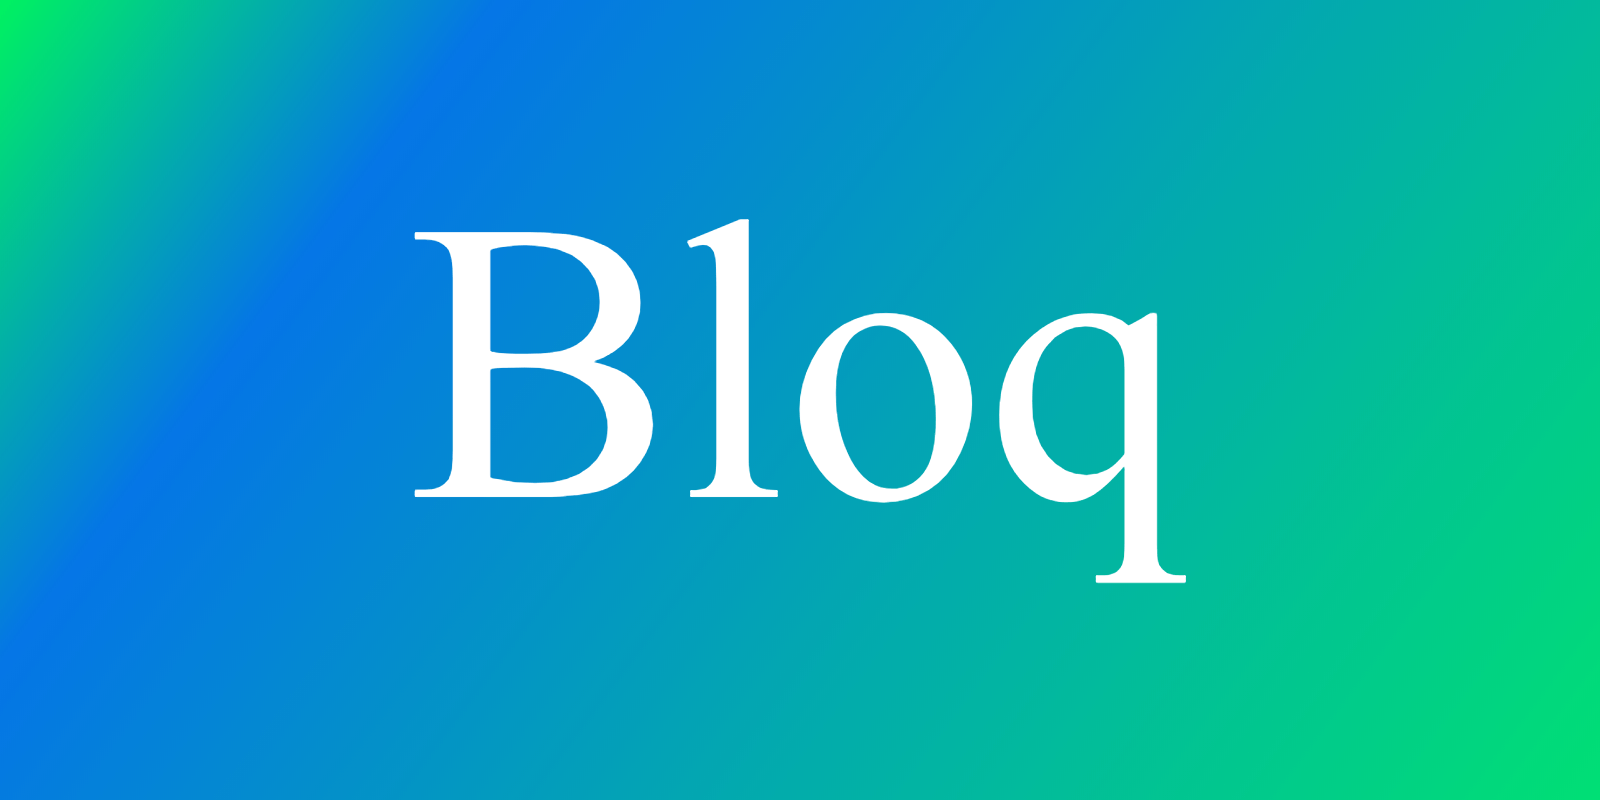 bloq-domain-name-idea-blog-generator